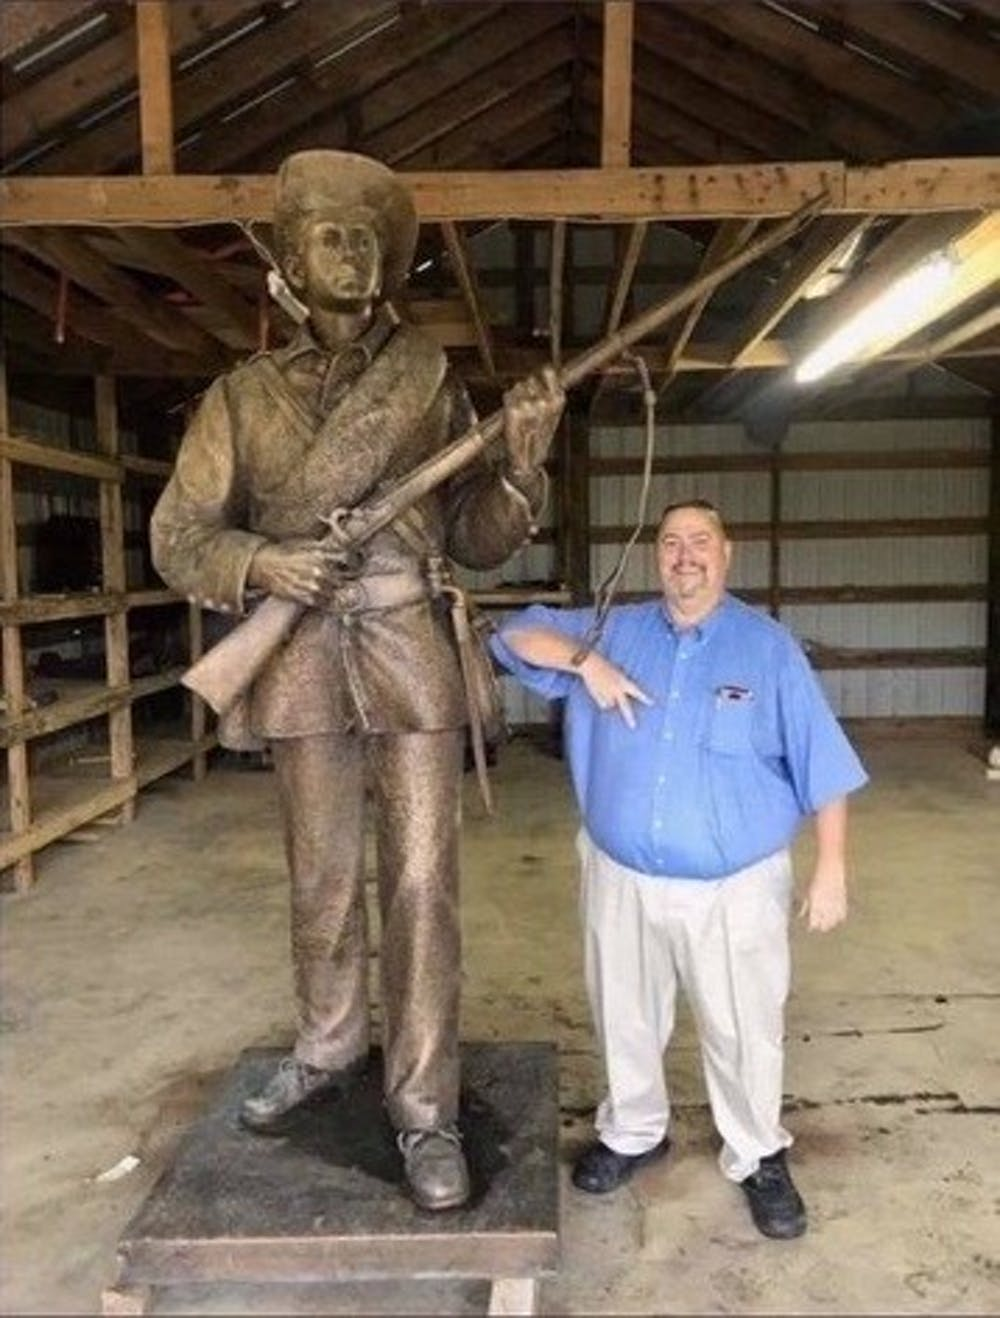 "<p>Kevin Stone, commander of the Sons of Confederate Veterans' North Carolina chapter, poses next to Silent Sam after suing and immediately settling with the UNC System and Board of Governors, a deal that gave the group possession of the Confederate monument and $2.5 million in UNC System money for its ""preservation and benefit."" Photo courtesy of SCV members.&nbsp;</p>"